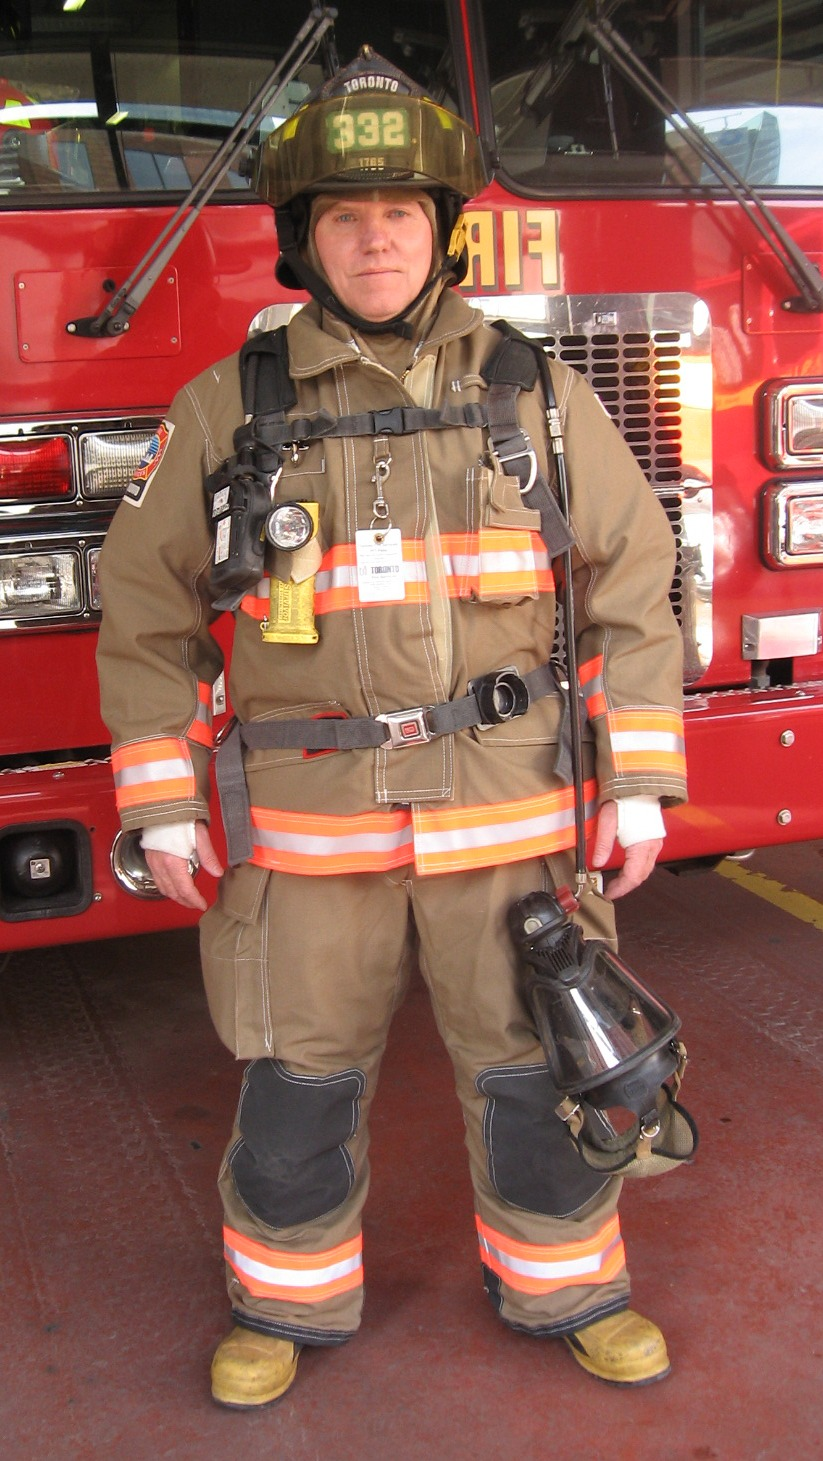 Firefighter Uniform In The Key Of He